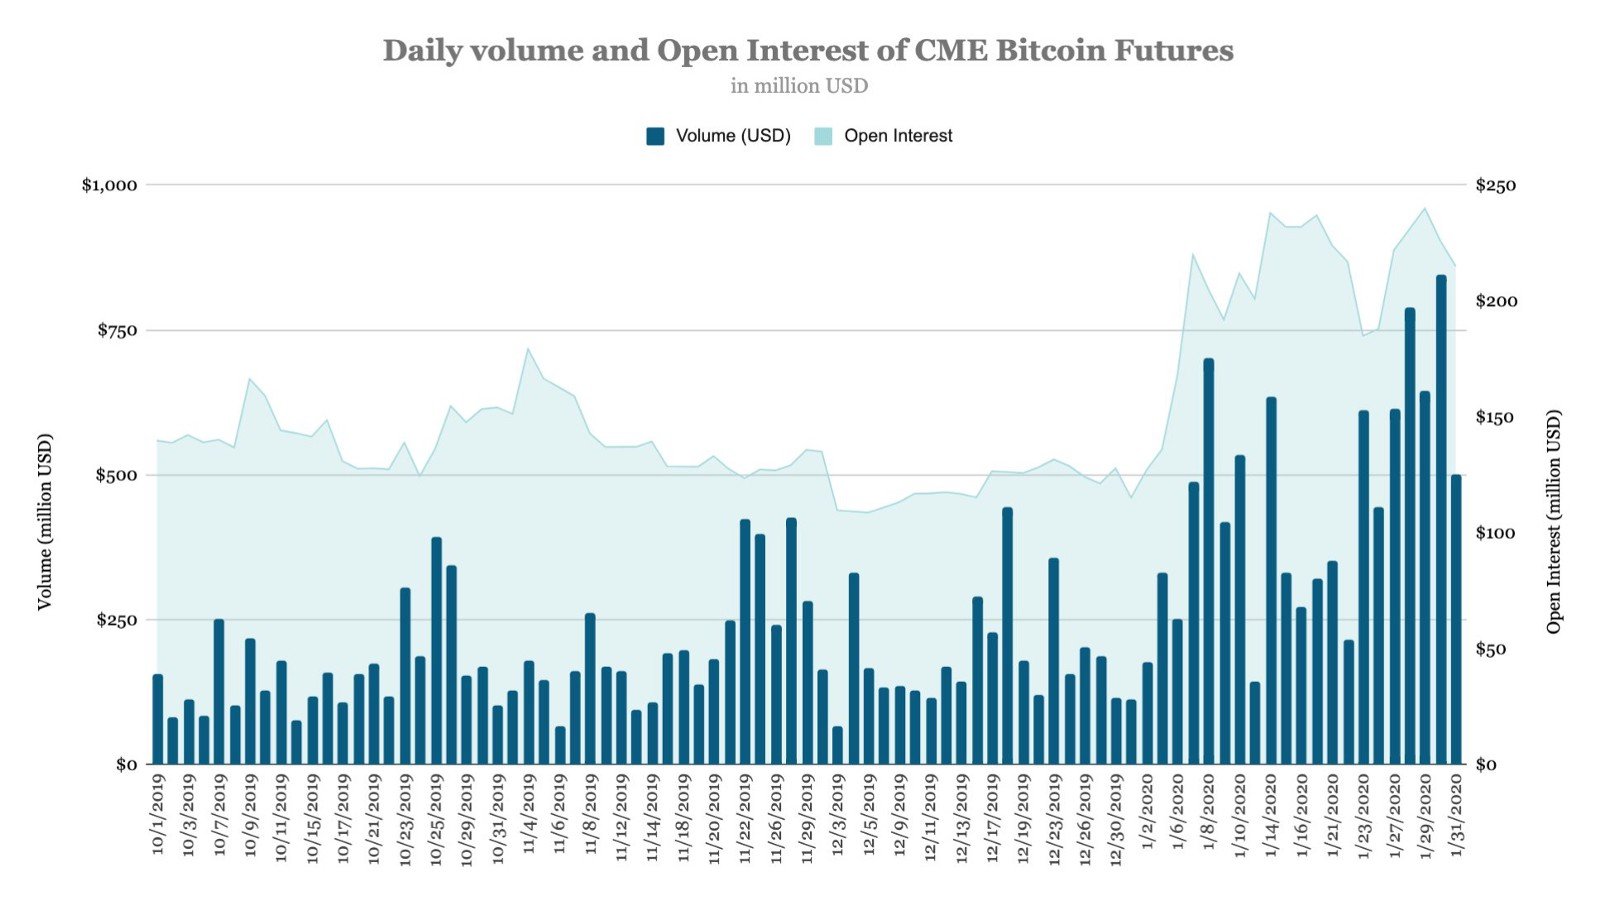 Daily volume and open interest of CME Bitcoin futures